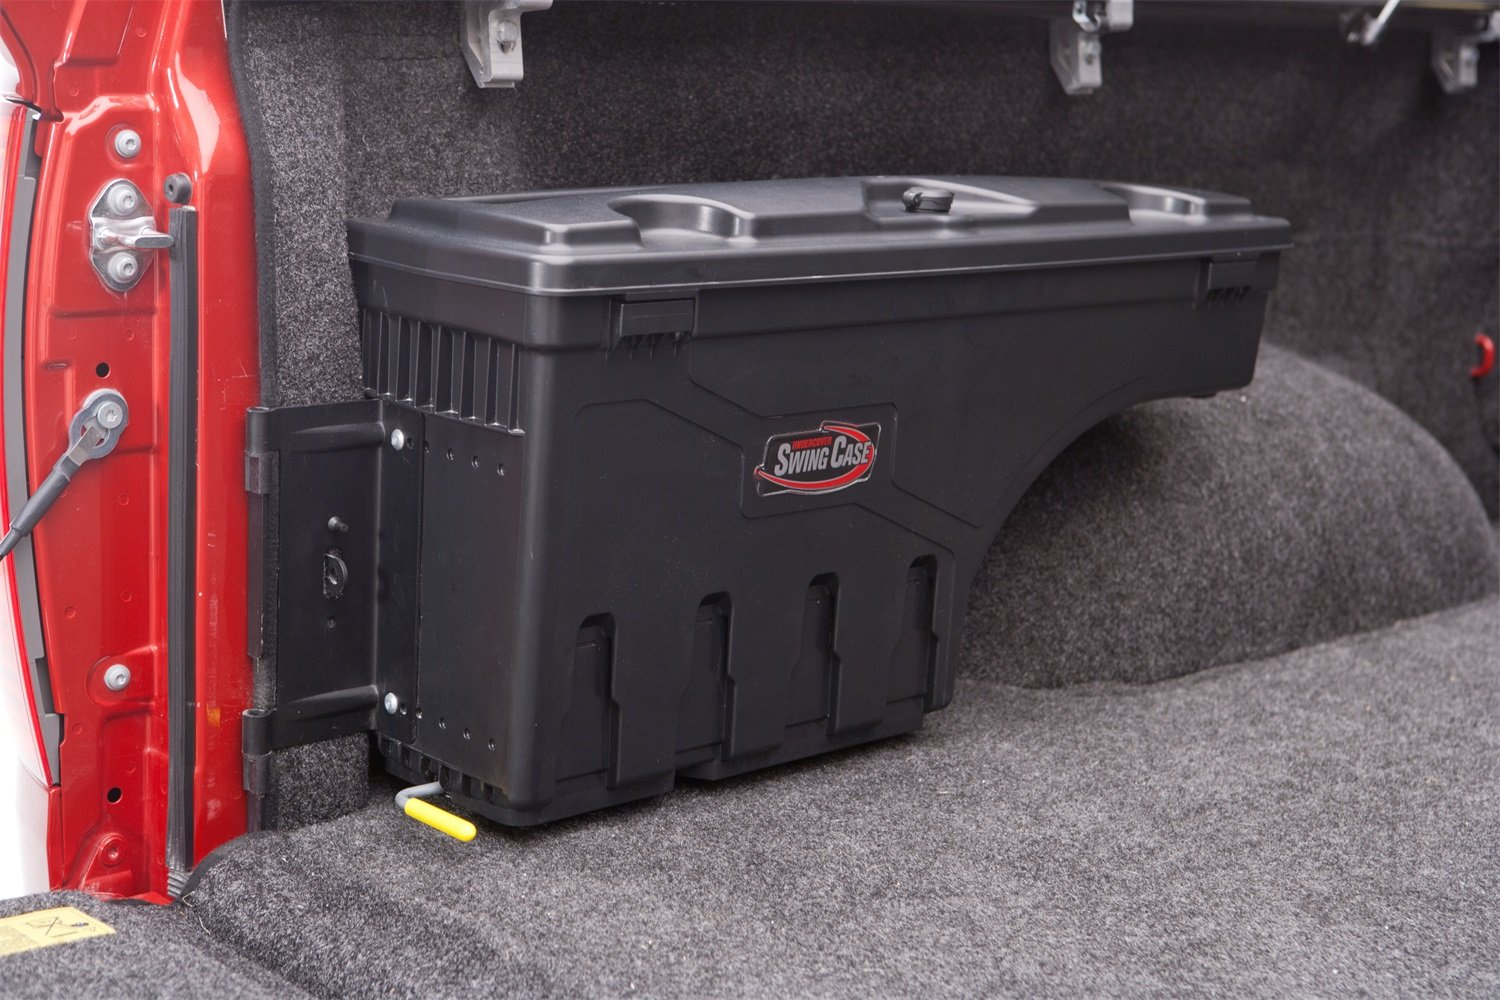 UnderCover SC200D SwingCase Truck Storage Box 1999-2016 F-250/F-350 Super Duty Drivers Side Black by Undercover